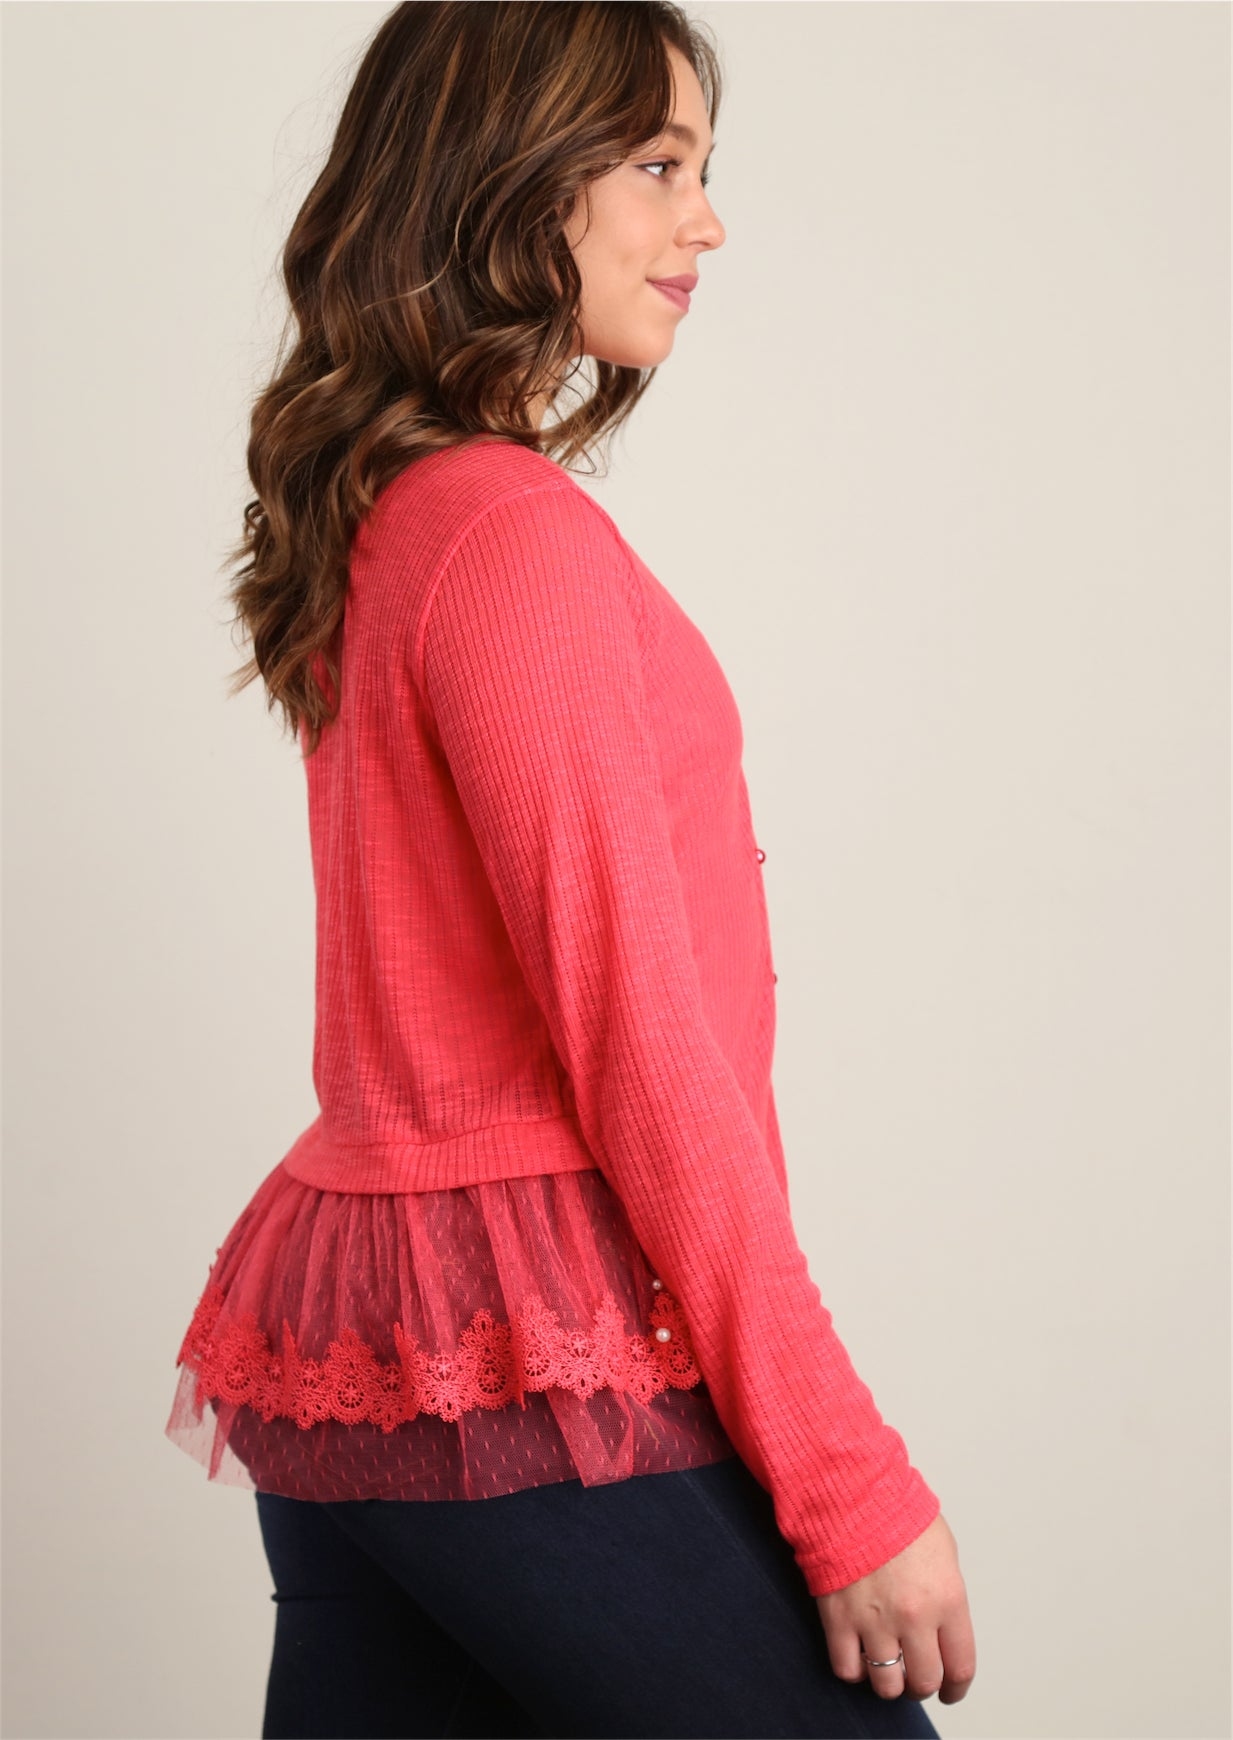 Coral Sweater Knit with Pearl Trim